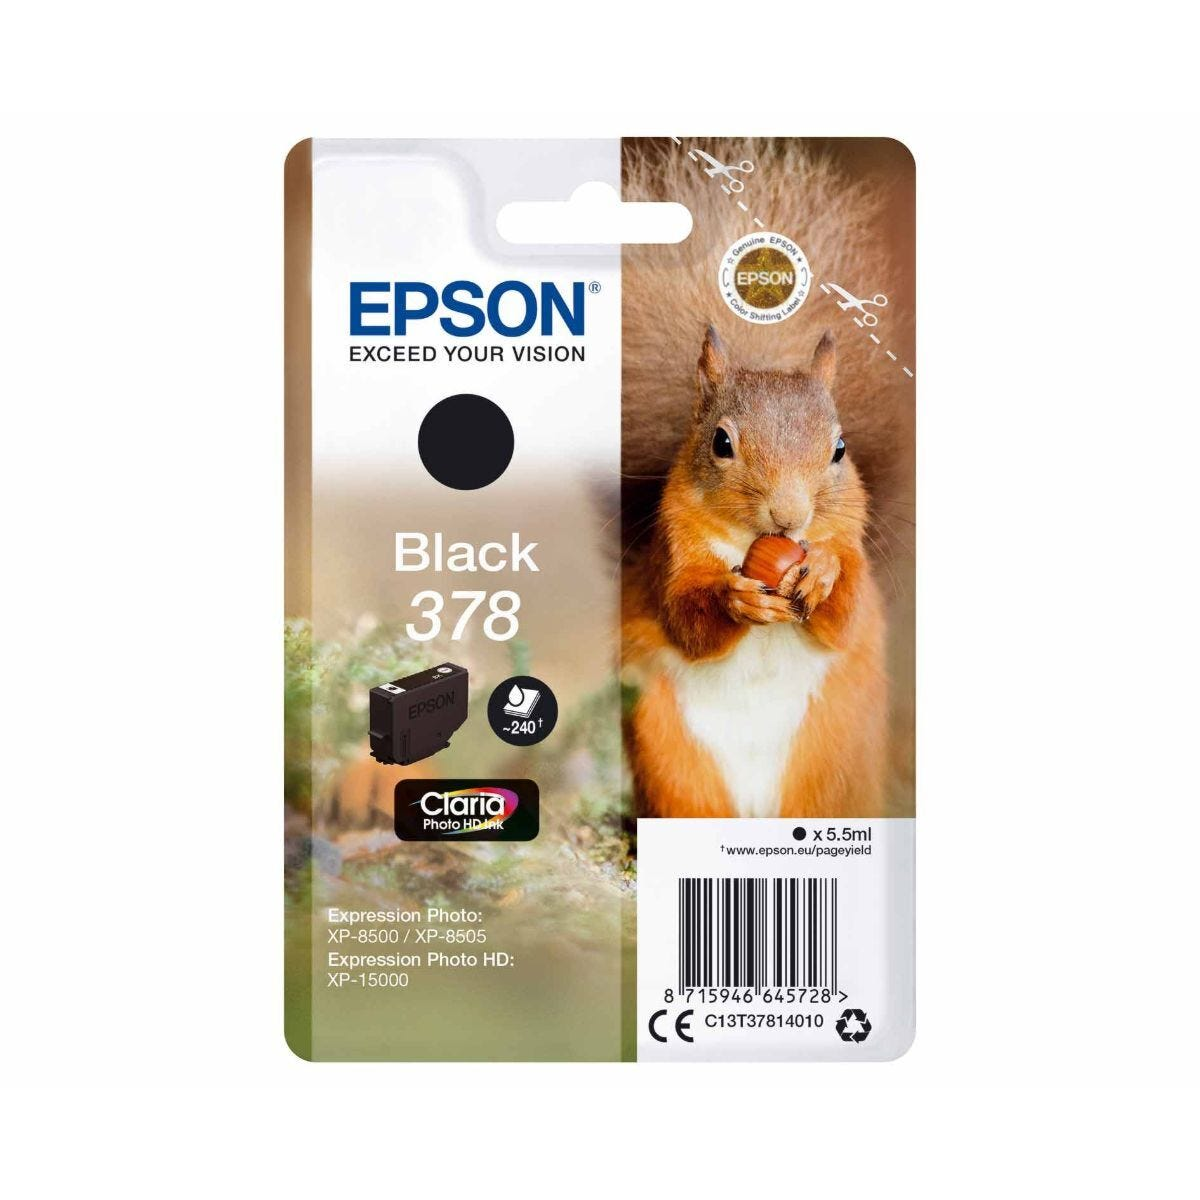 Epson 378 Squirrel Ink Cartridge Black